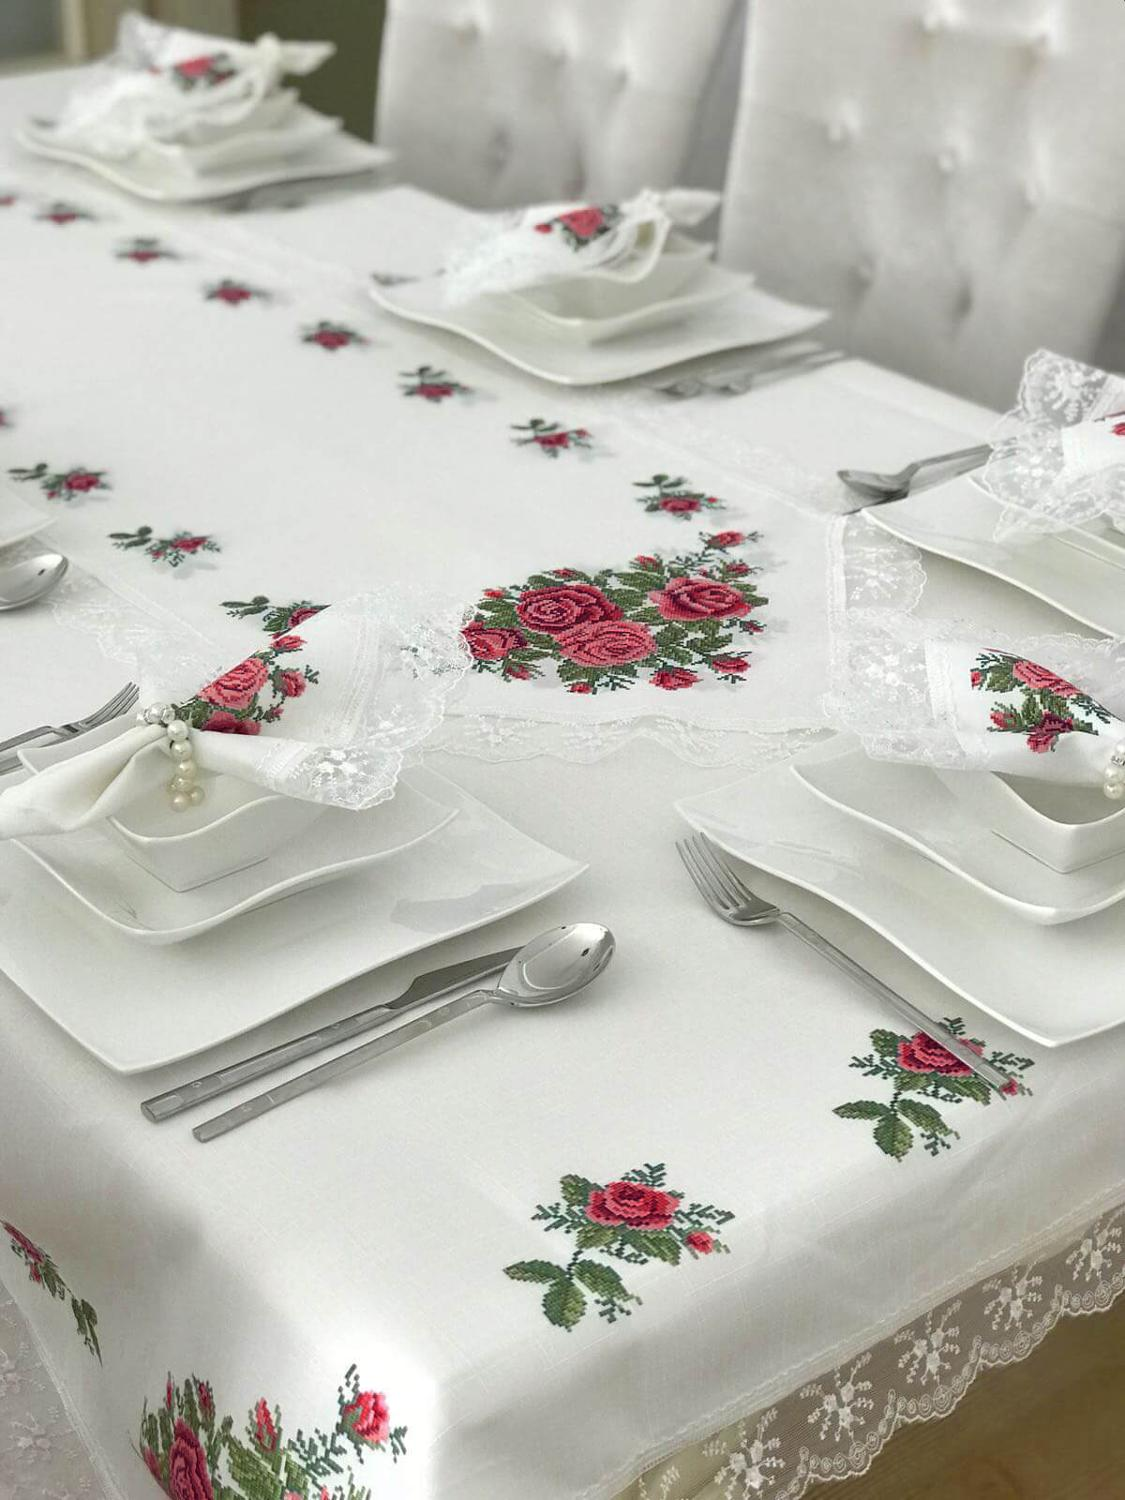 Tablecloth Set Rose Cross Stitch French Lace Edged 160 Cm X 220 Cm - Red